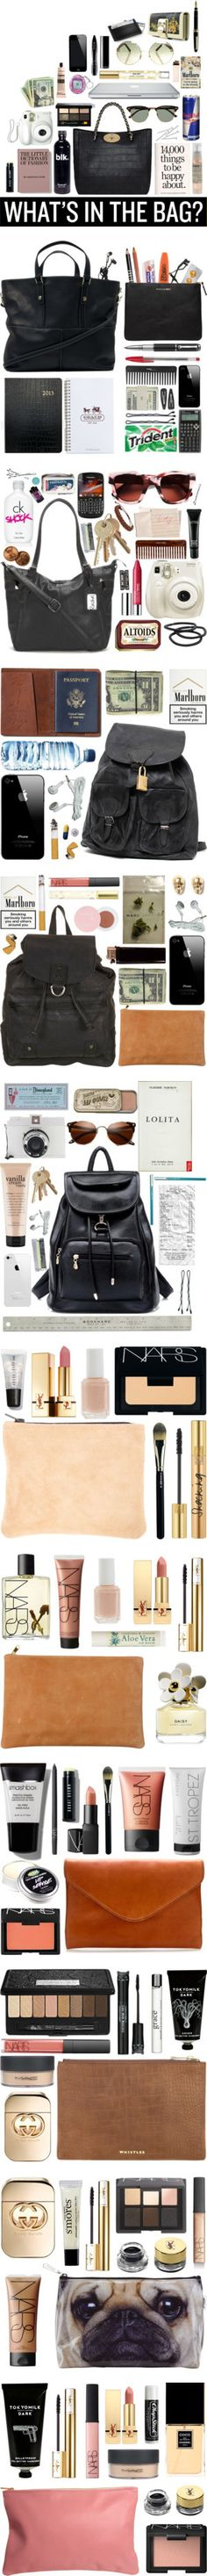 """what's in the bag?"" by goldiloxx on Polyvore"